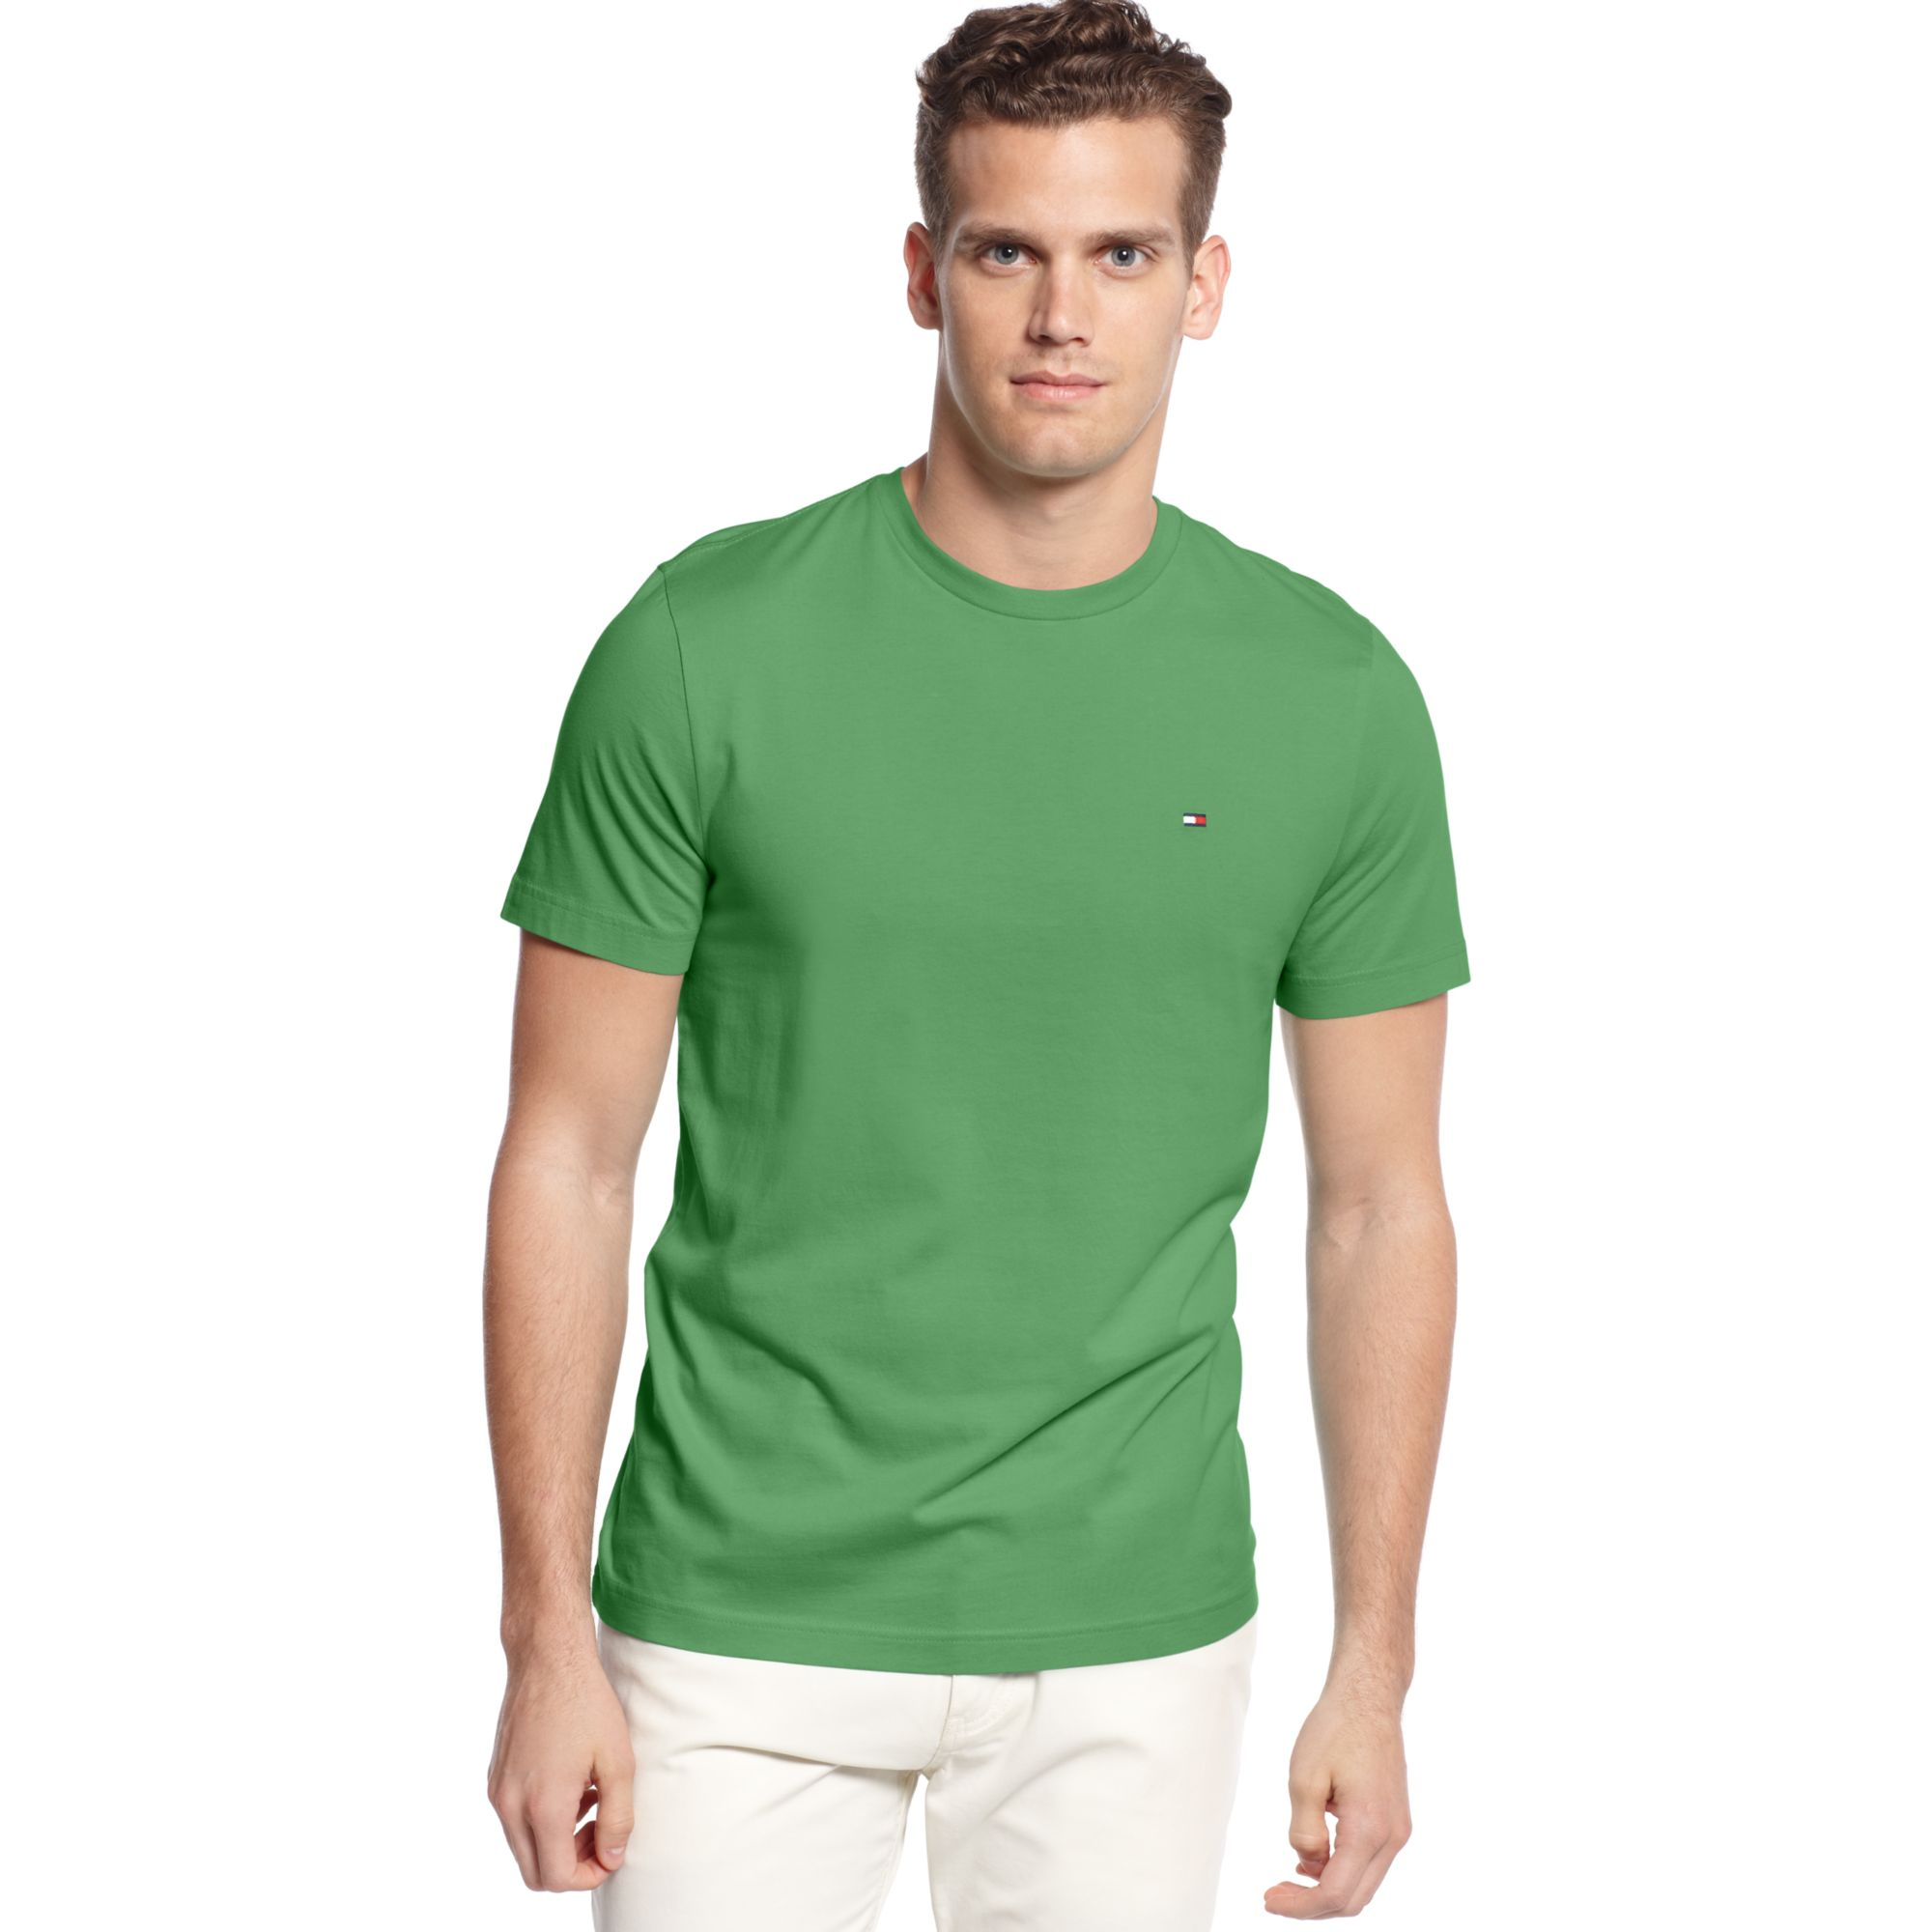 lyst tommy hilfiger beach crewneck tshirt in green for men. Black Bedroom Furniture Sets. Home Design Ideas